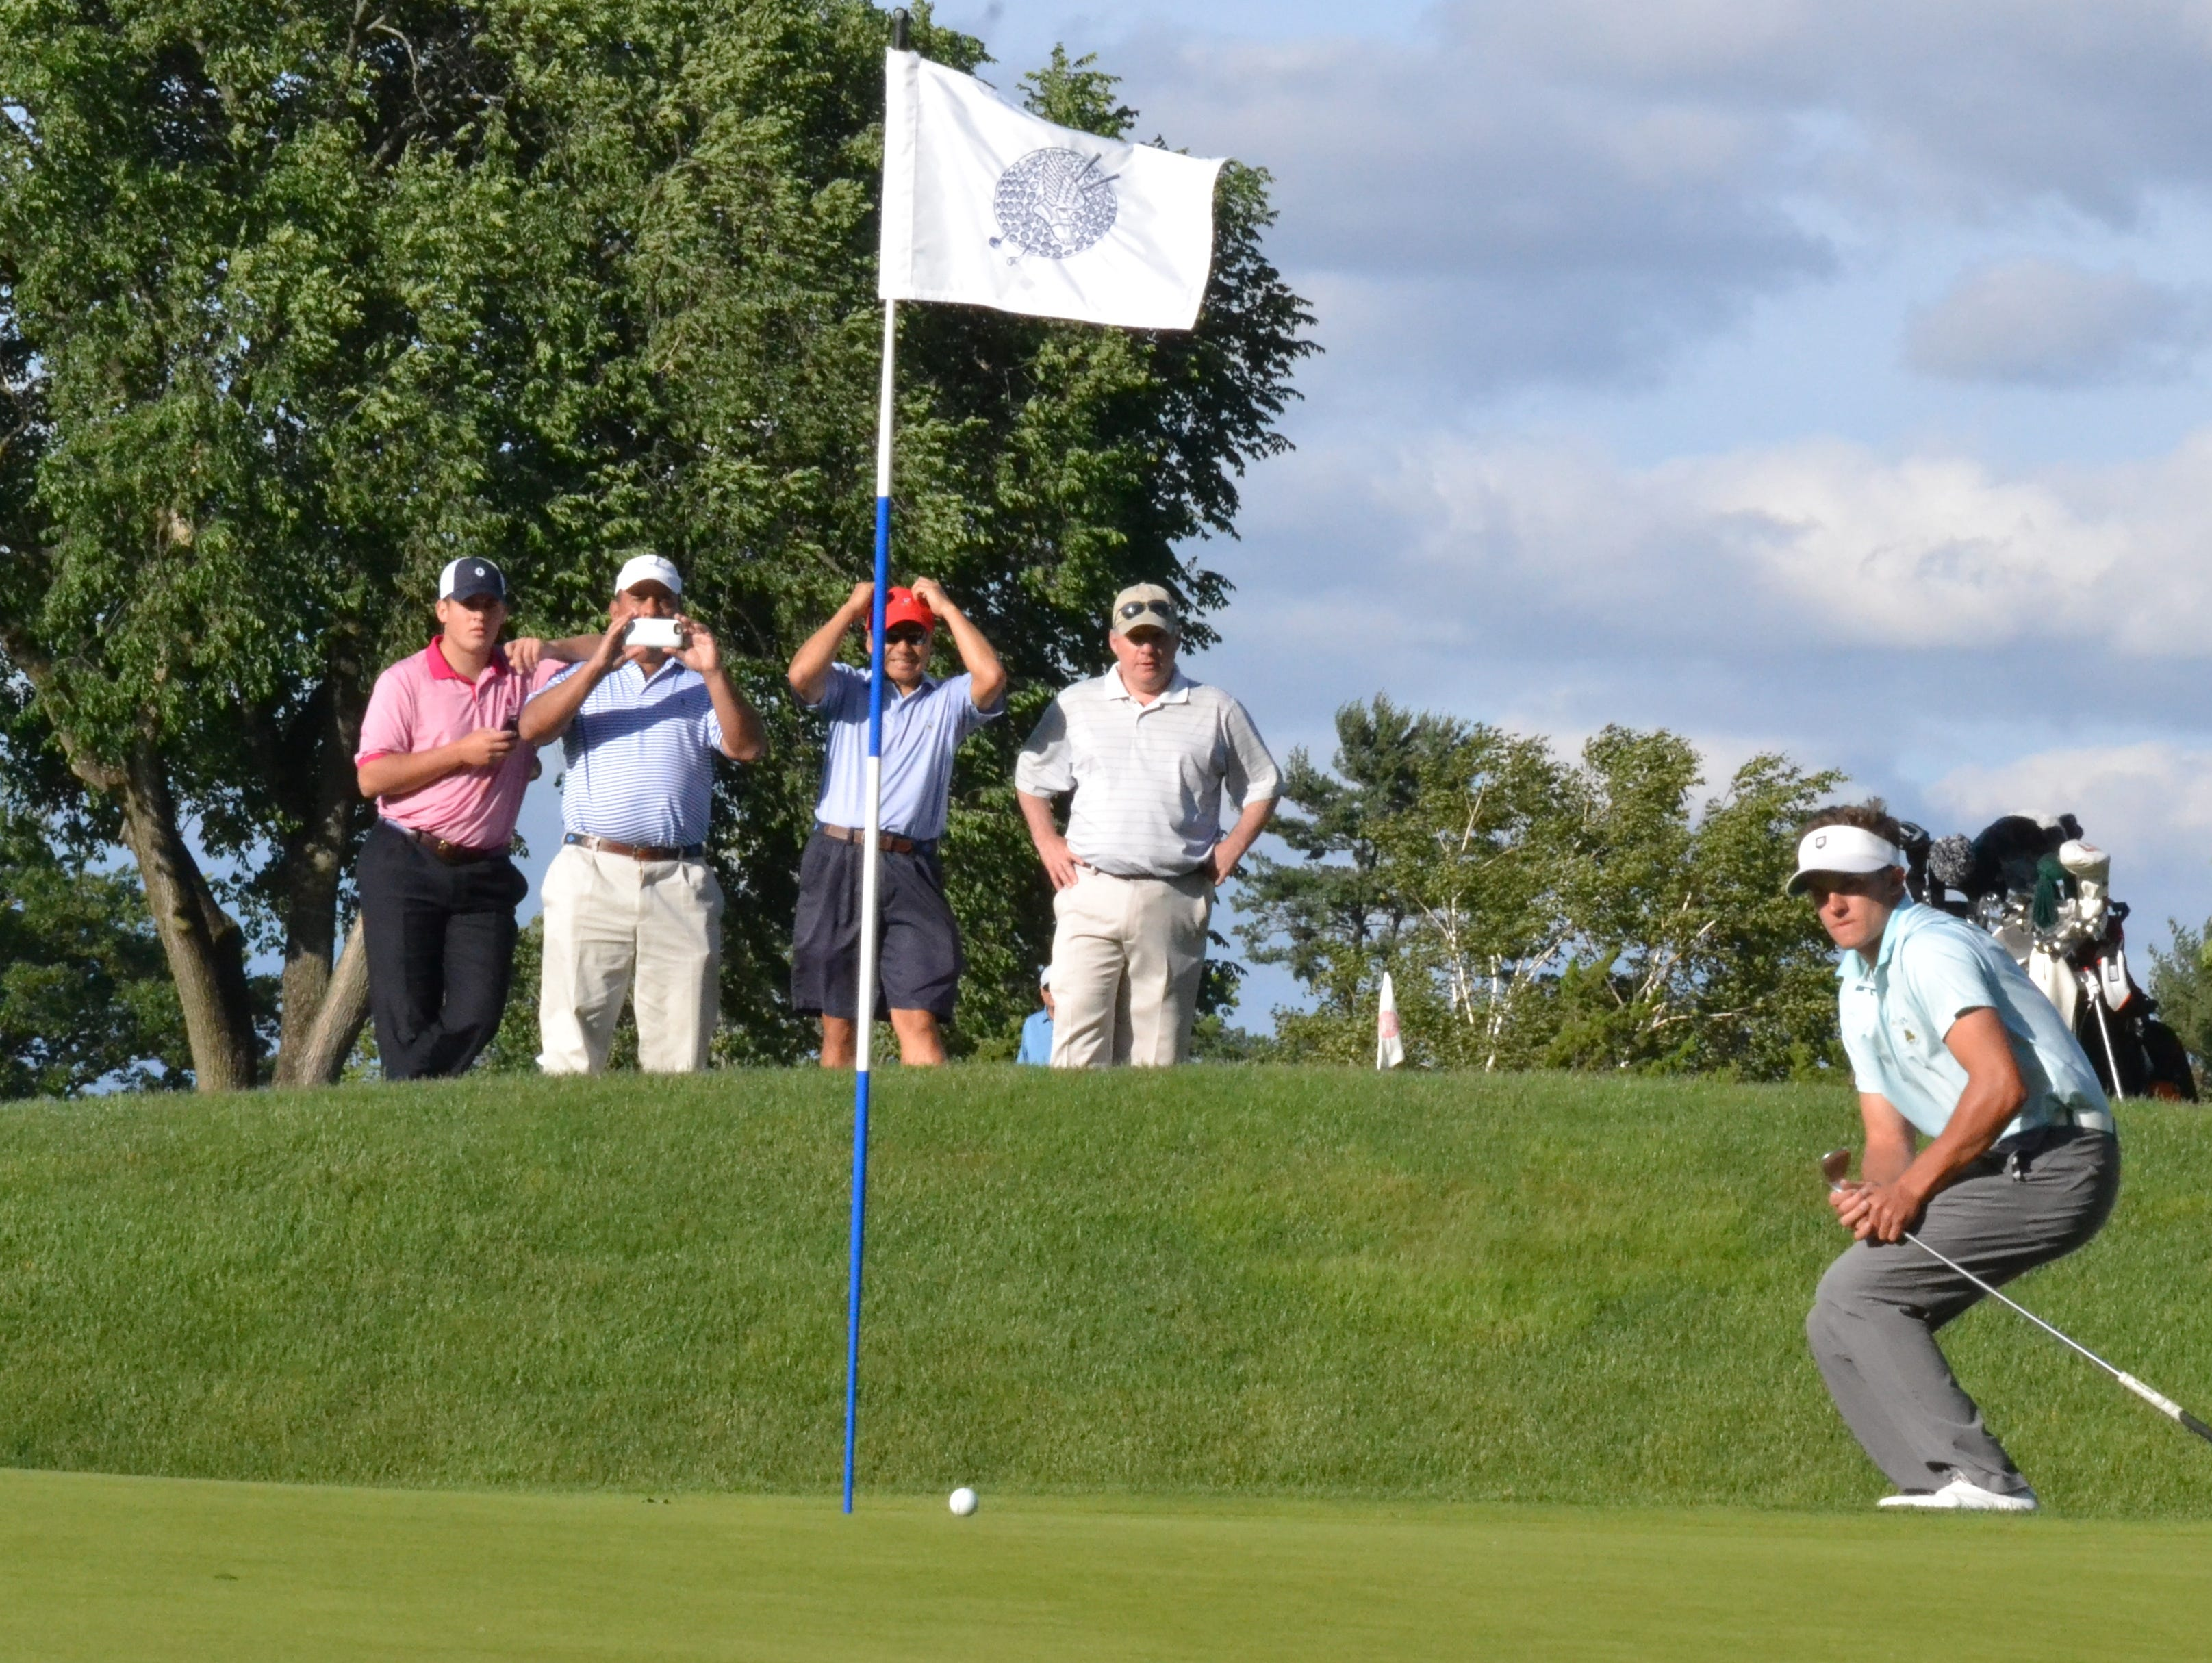 James Nicholas almost holed out for par on the 18th hole at Winged Foot West in the finale of the Anderson Memorial.